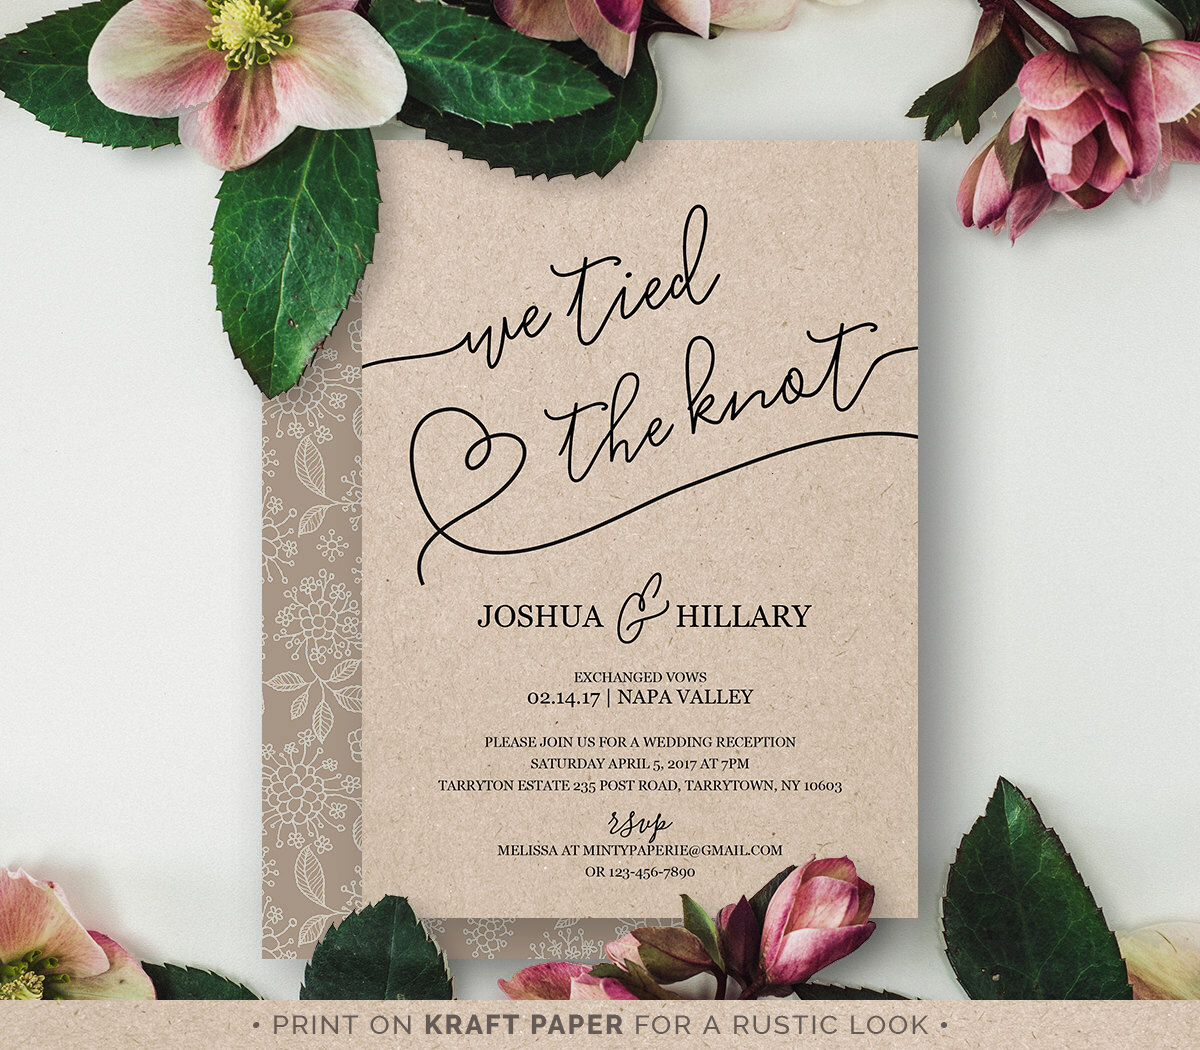 Pin By Caitlyn Martin On Wedding Pinterest Wedding Invitations